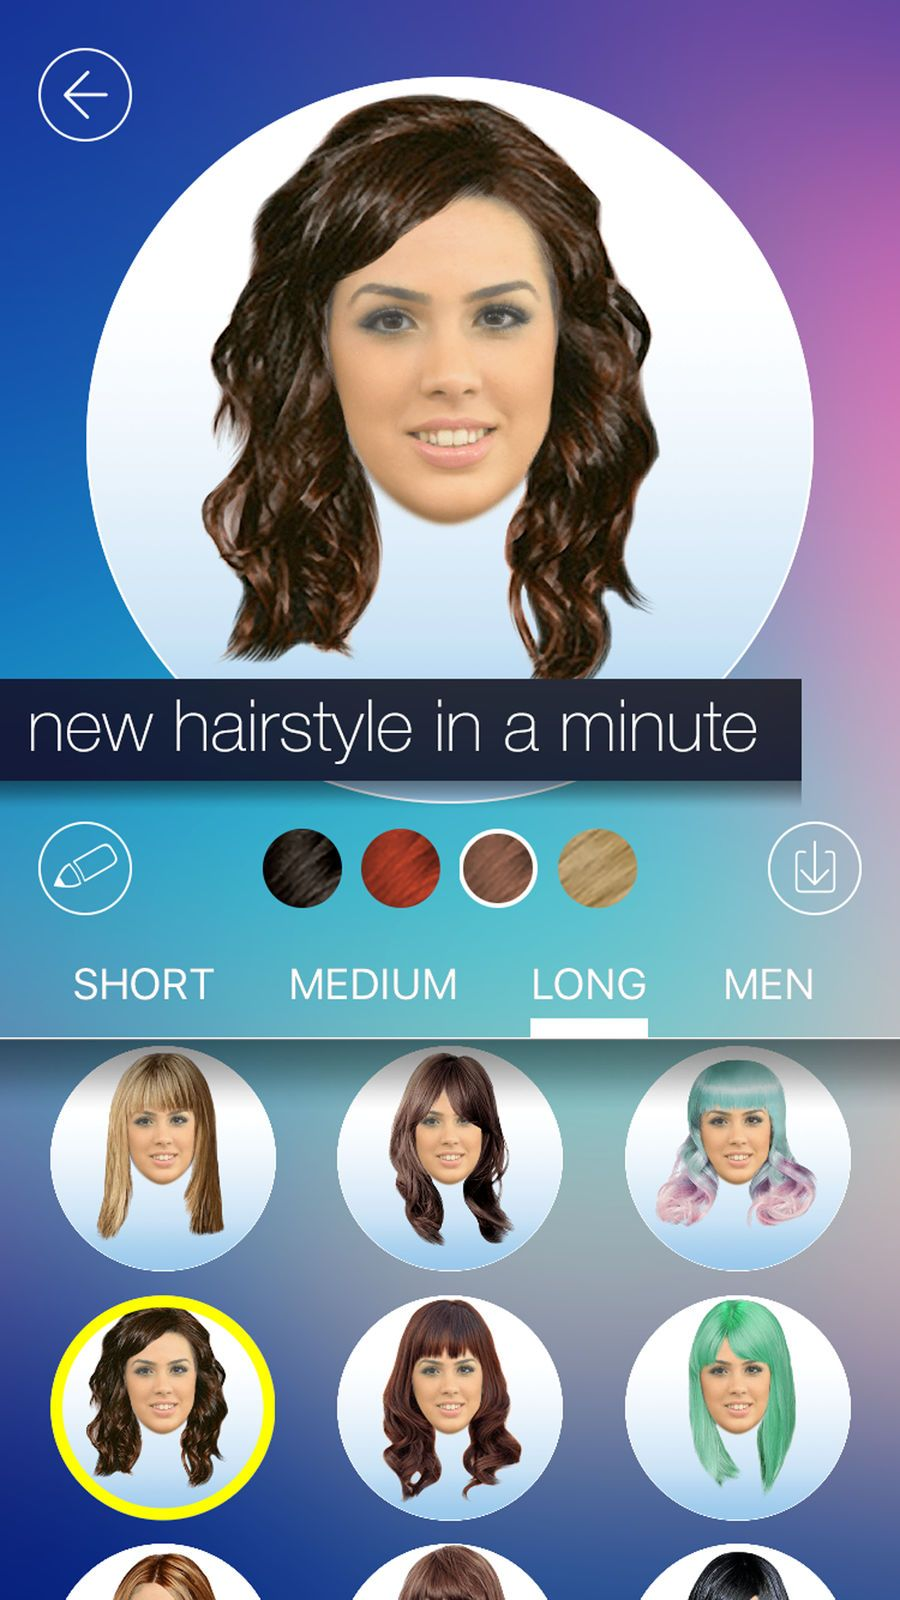 Hair Makeover New Hairstyle And Haircut In A Minute Photo Heroqai Amp Lifestyle Hair Makeover New Hair Free Hair